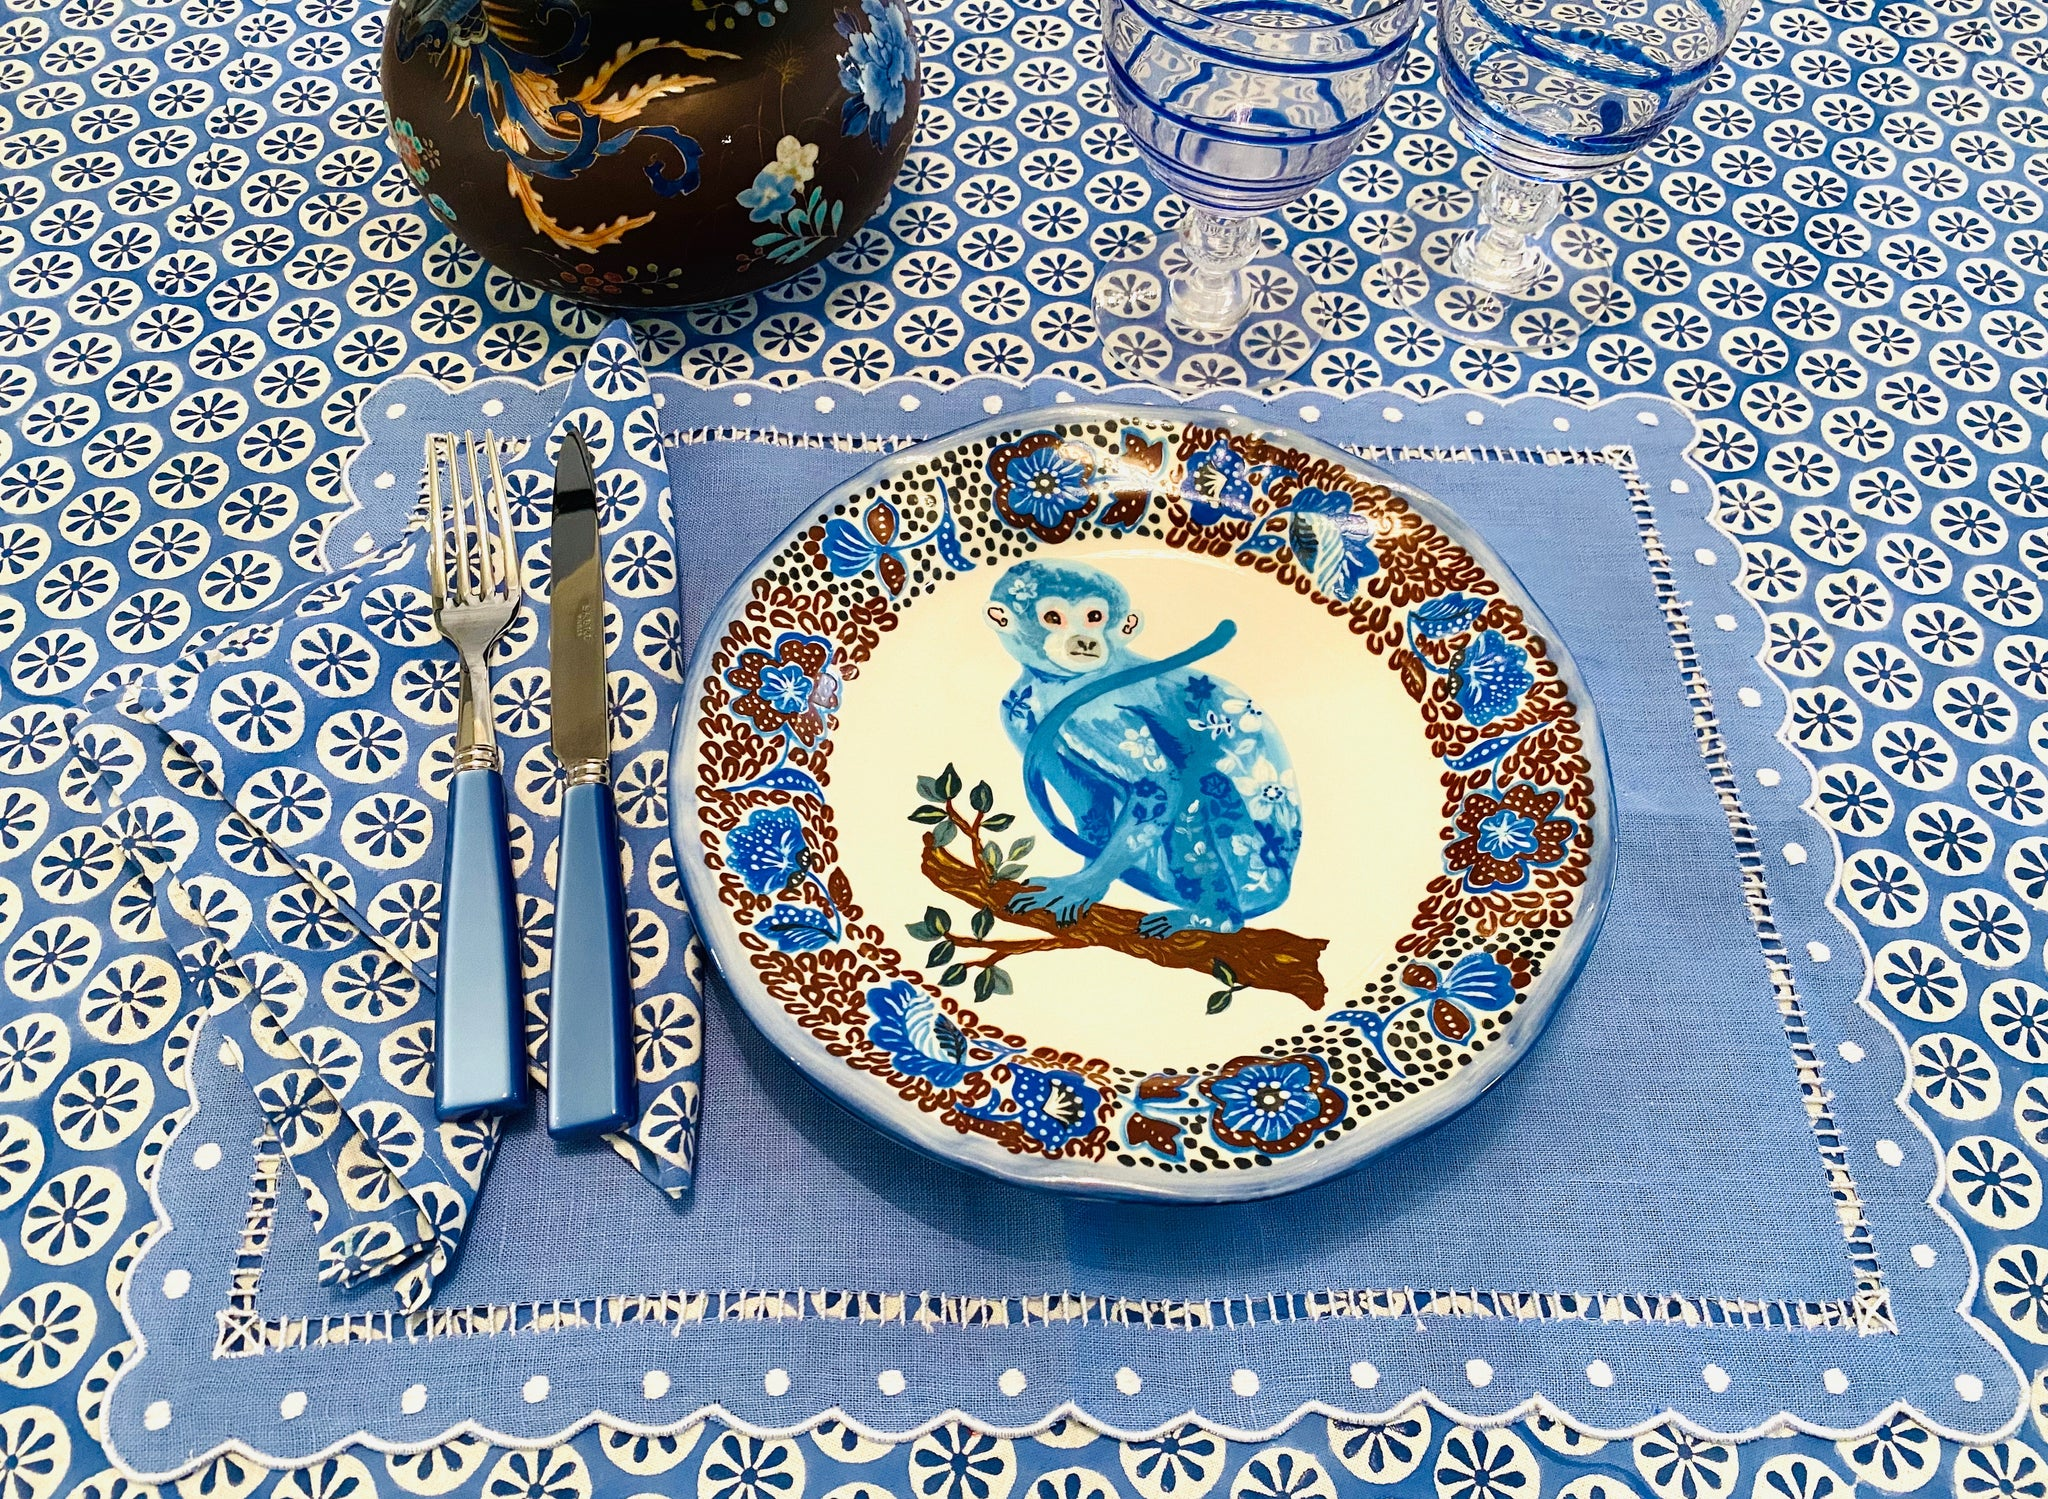 Blue Star Block Print Tablecloth